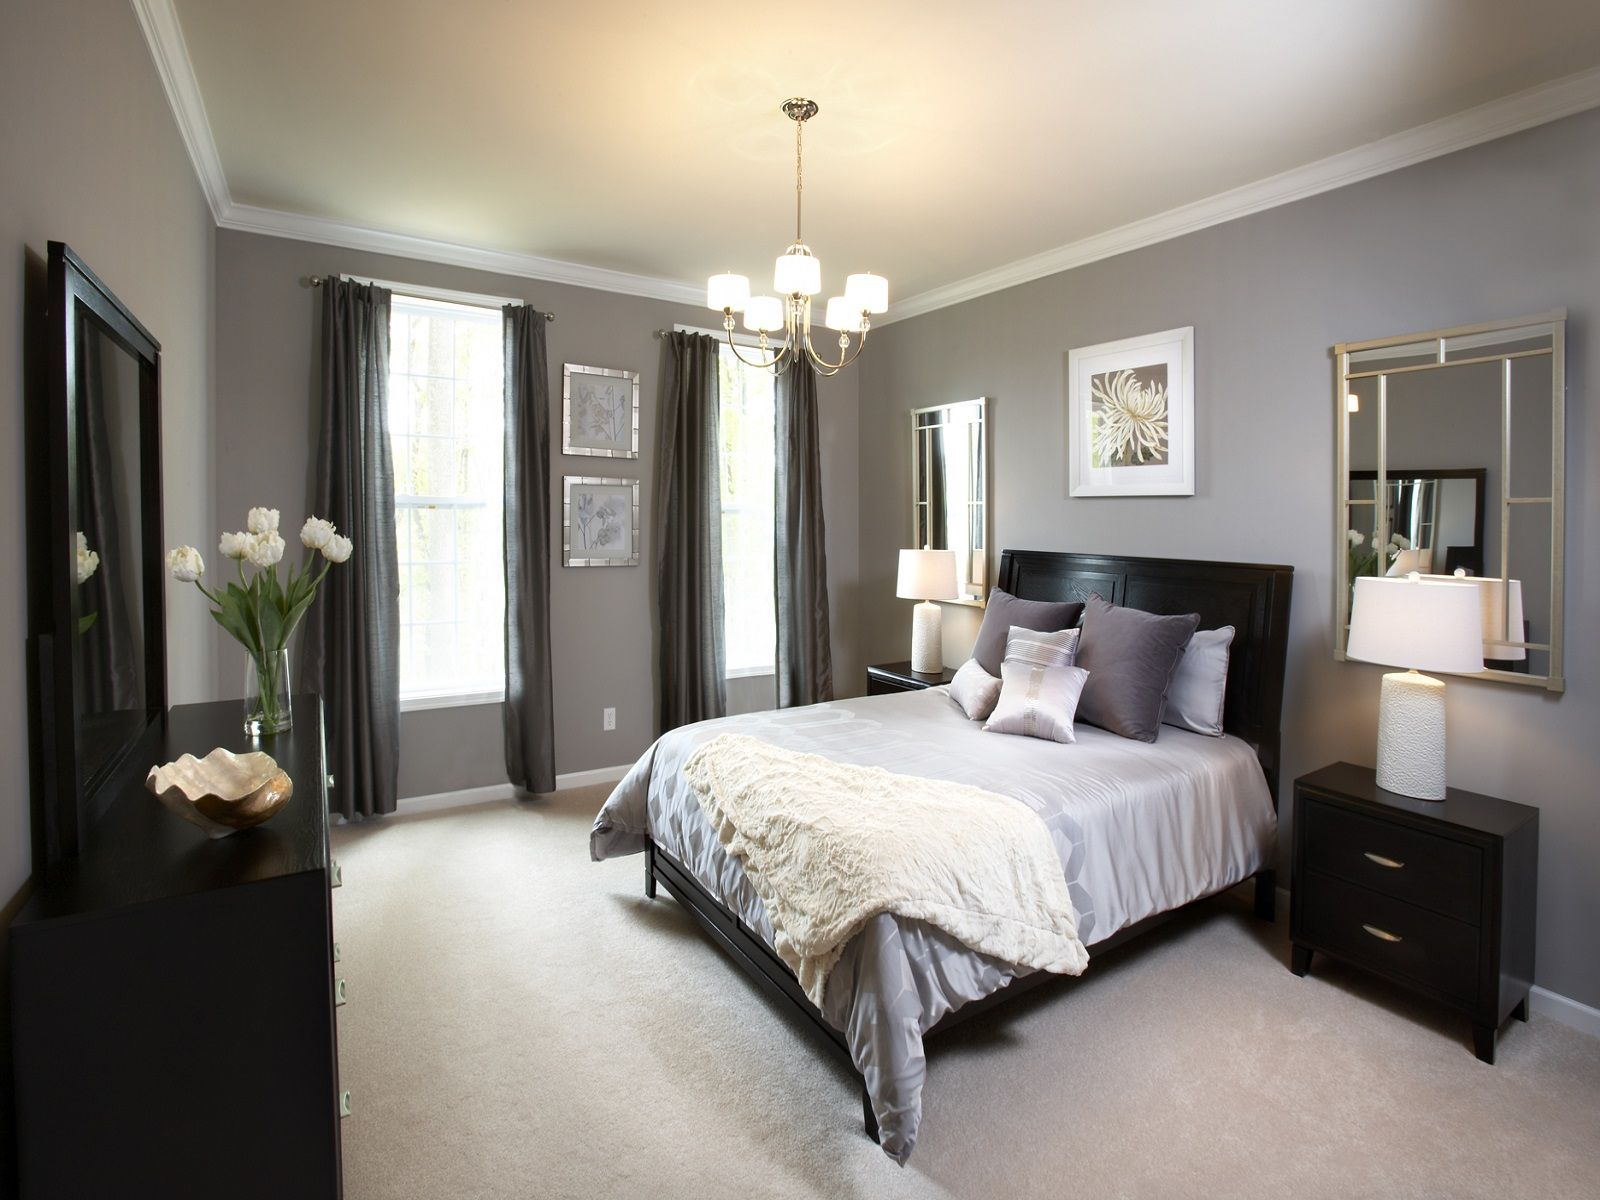 paint ideas for living room with black furniture design a tiny master bedroom colors dark home pinterest 41 images amusing color idea ambito co